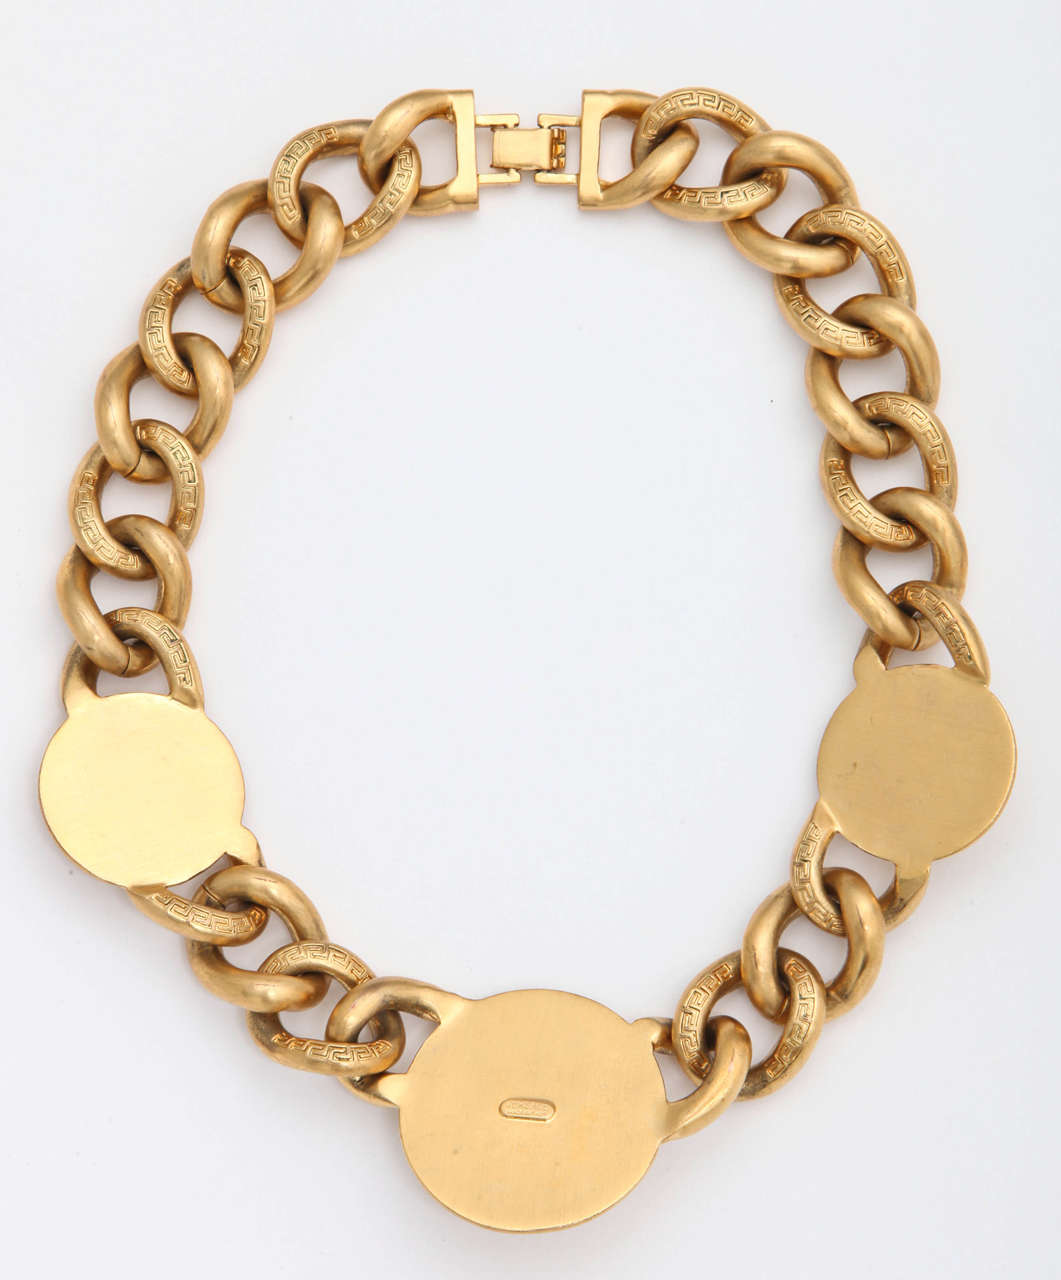 Versace 3 Medusa Gold Chain Necklace 4